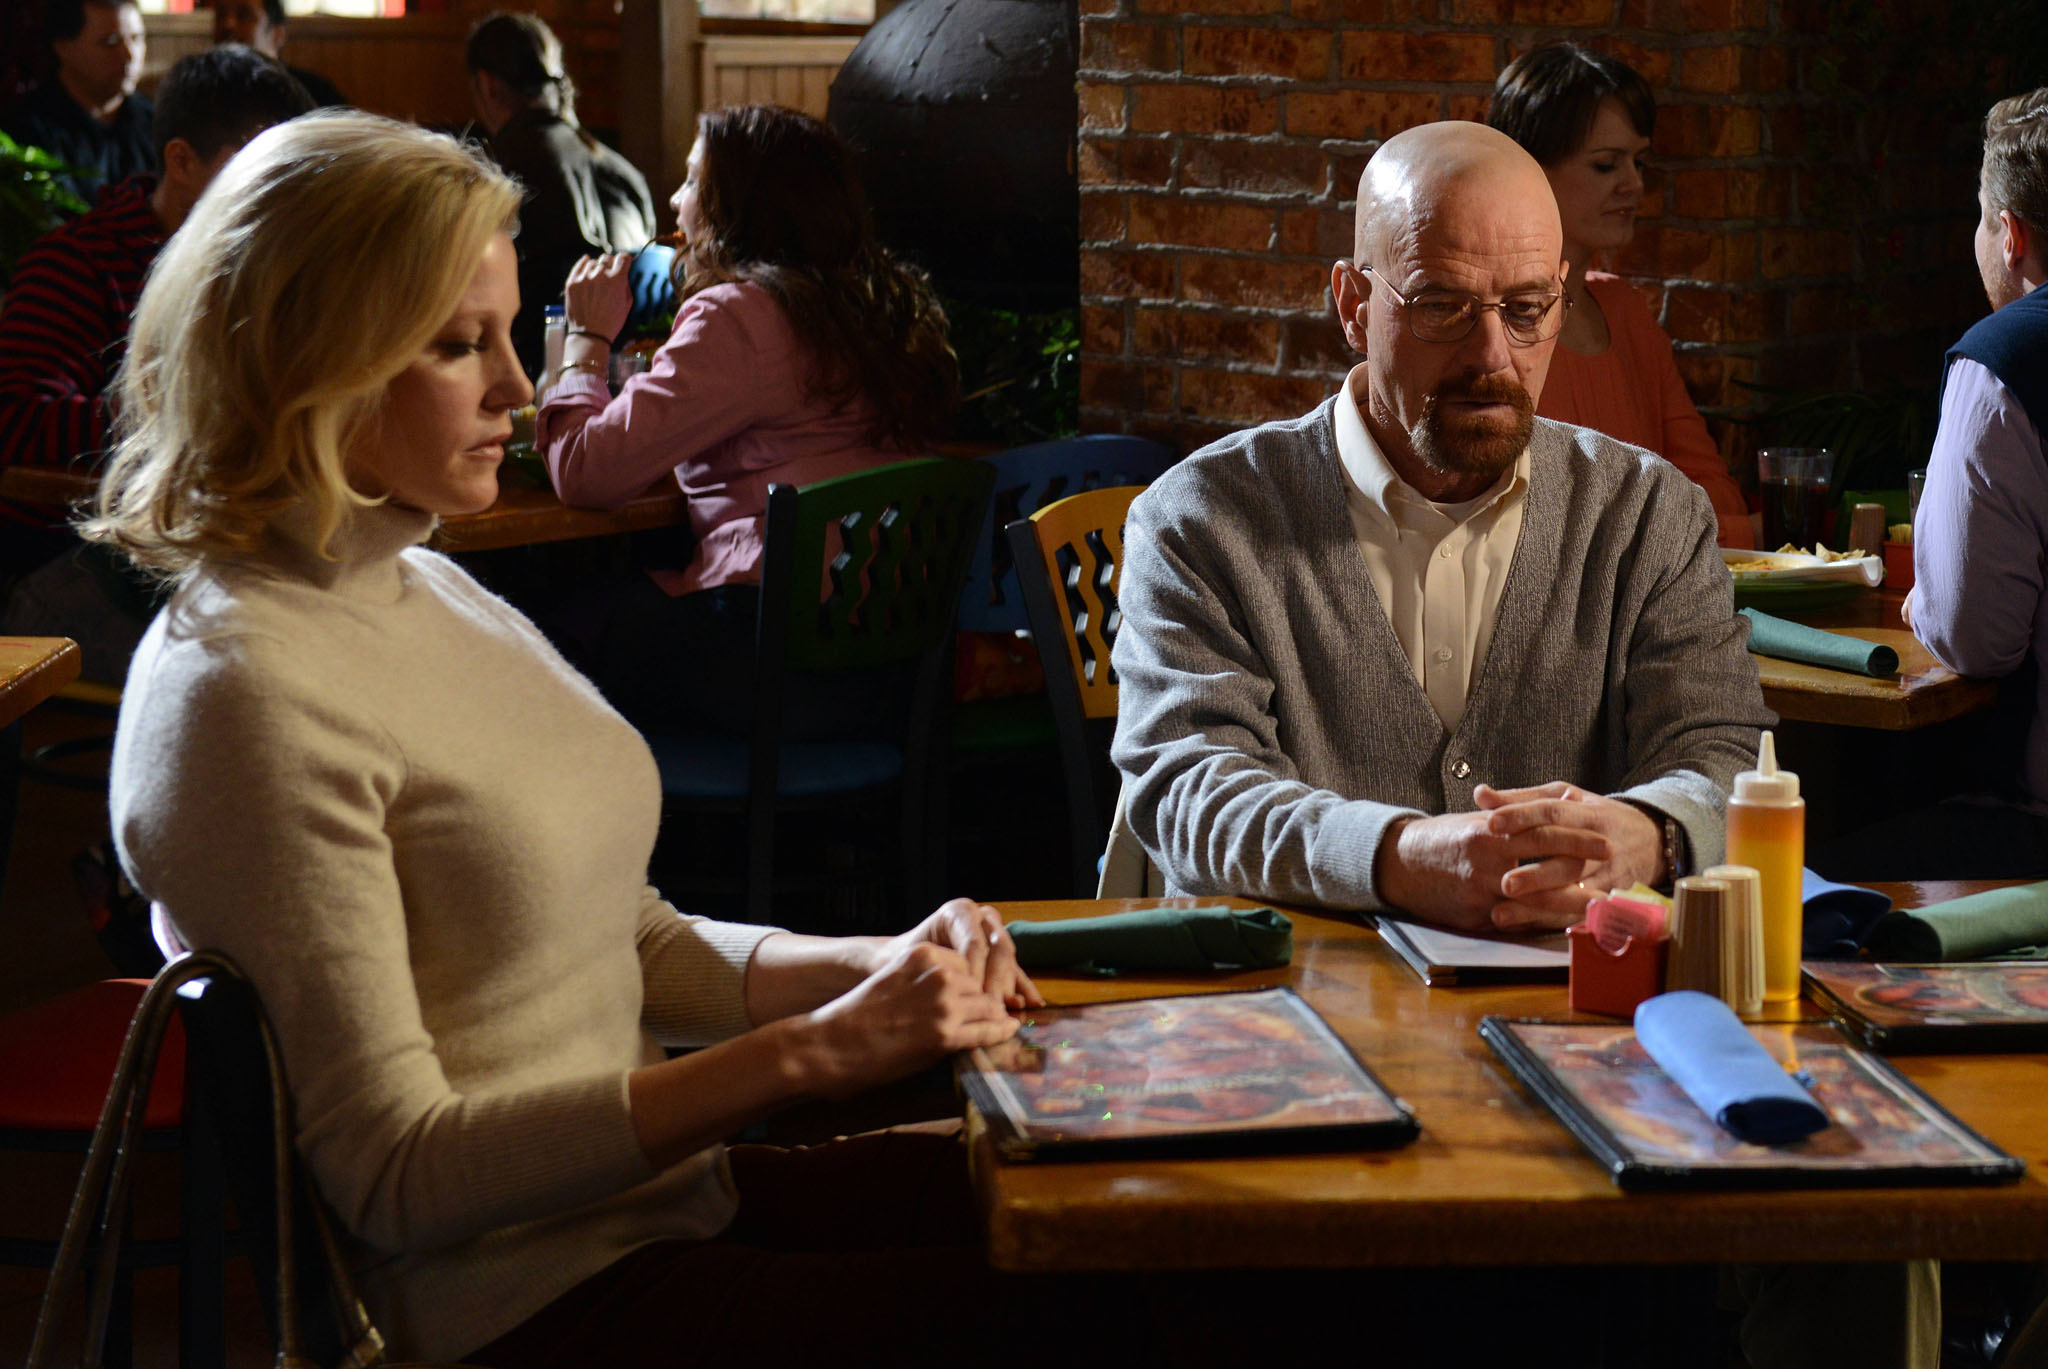 Skyler White (Anna Gunn) and Walter White (Bryan Cranston) in the 'Breaking Bad' Season 5 episode, 'Confessions.'